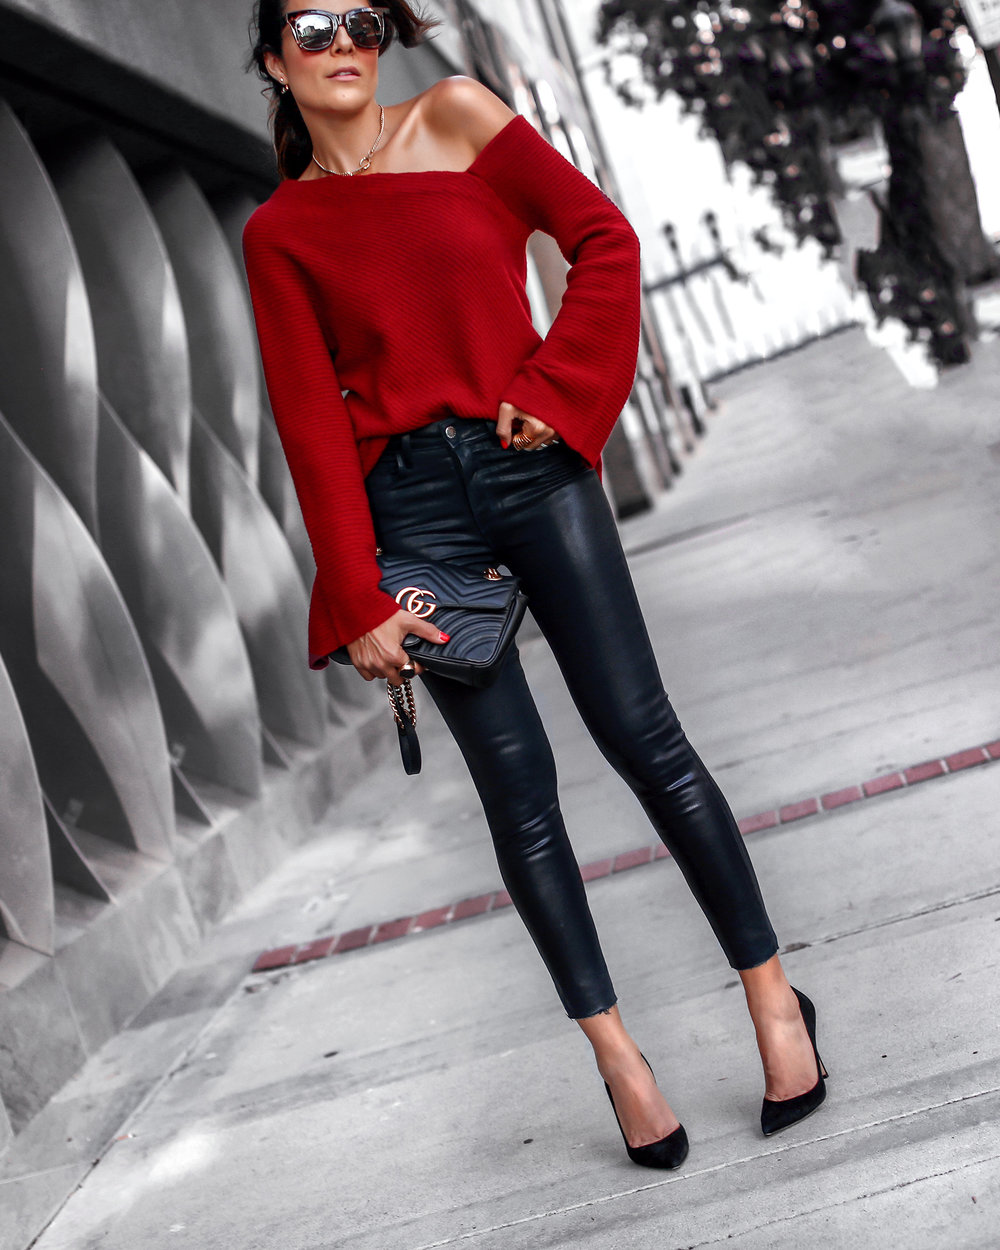 A.L.C Asymmetric Cashmere Sweater L'Agence Skinny jeans Gucci Bag Nordstrom Anniversary Sale.jpg